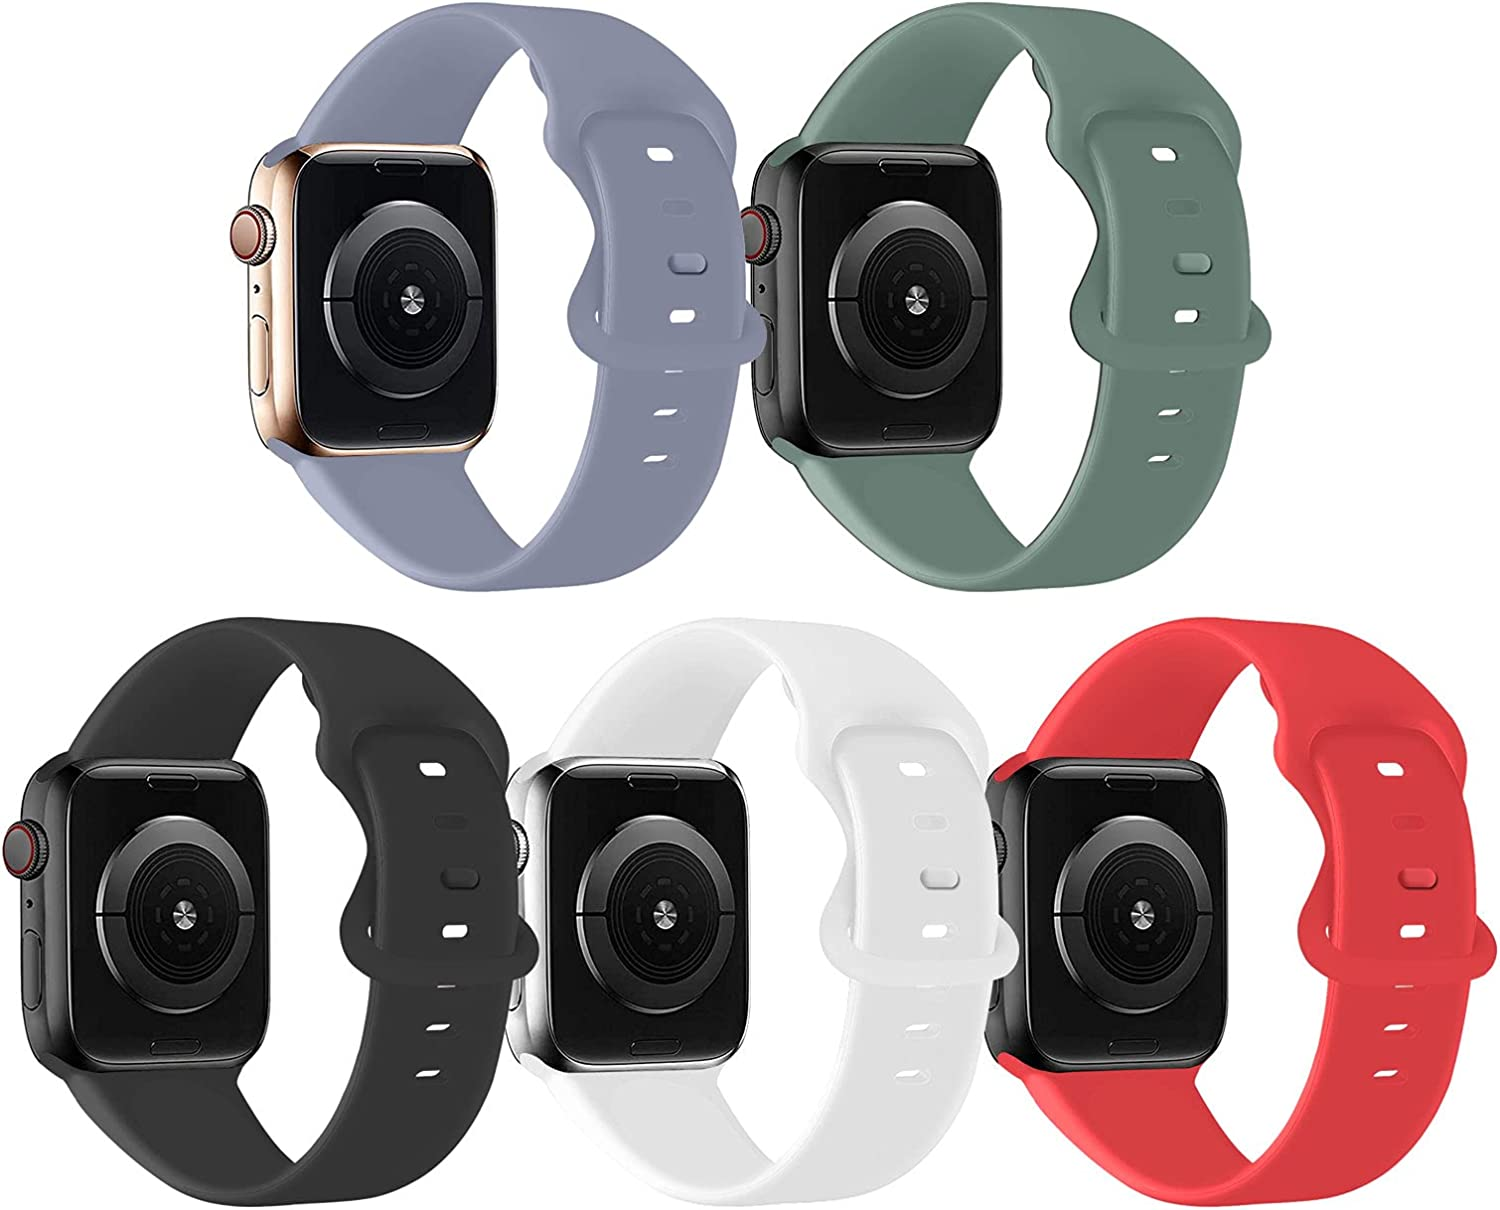 Bifeiyo 5 Pack Sport Bands Compatible with Apple Watch Band 38MM 40MM SM,Soft Silicone Replacement Strap Compatible for iWatch Series SE 6 5 4 3 2 1 Women Men,Black/White/Lavender Gray/Pine Green/Red